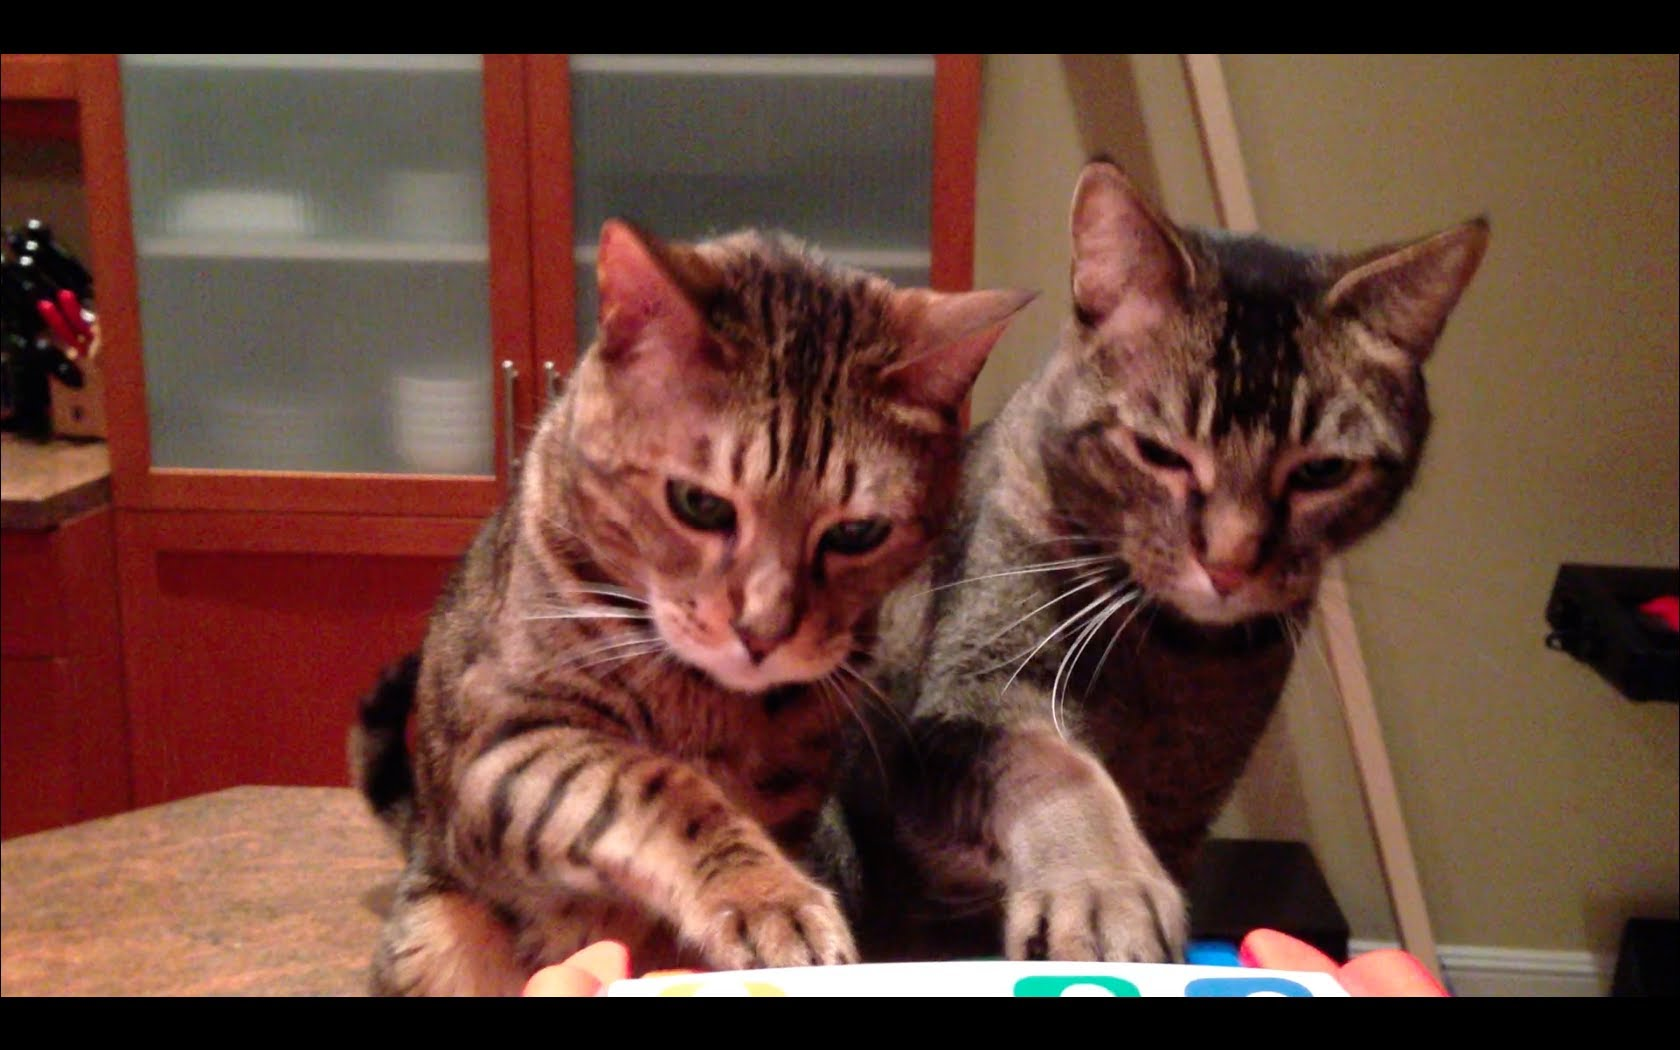 Pair of Trained Cats Perform A Charming Piano Duet